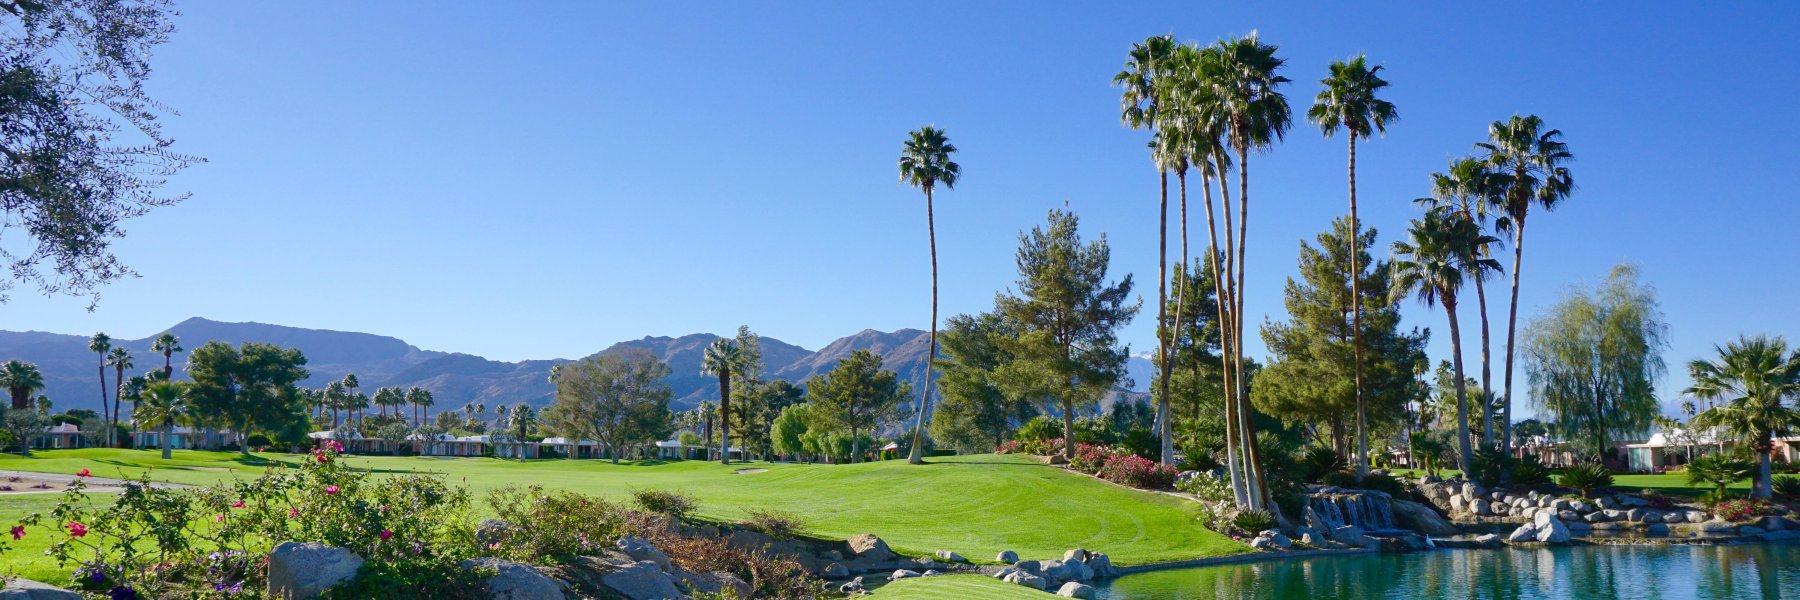 Marrakesh Country Club is a community of homes in Palm Desert California